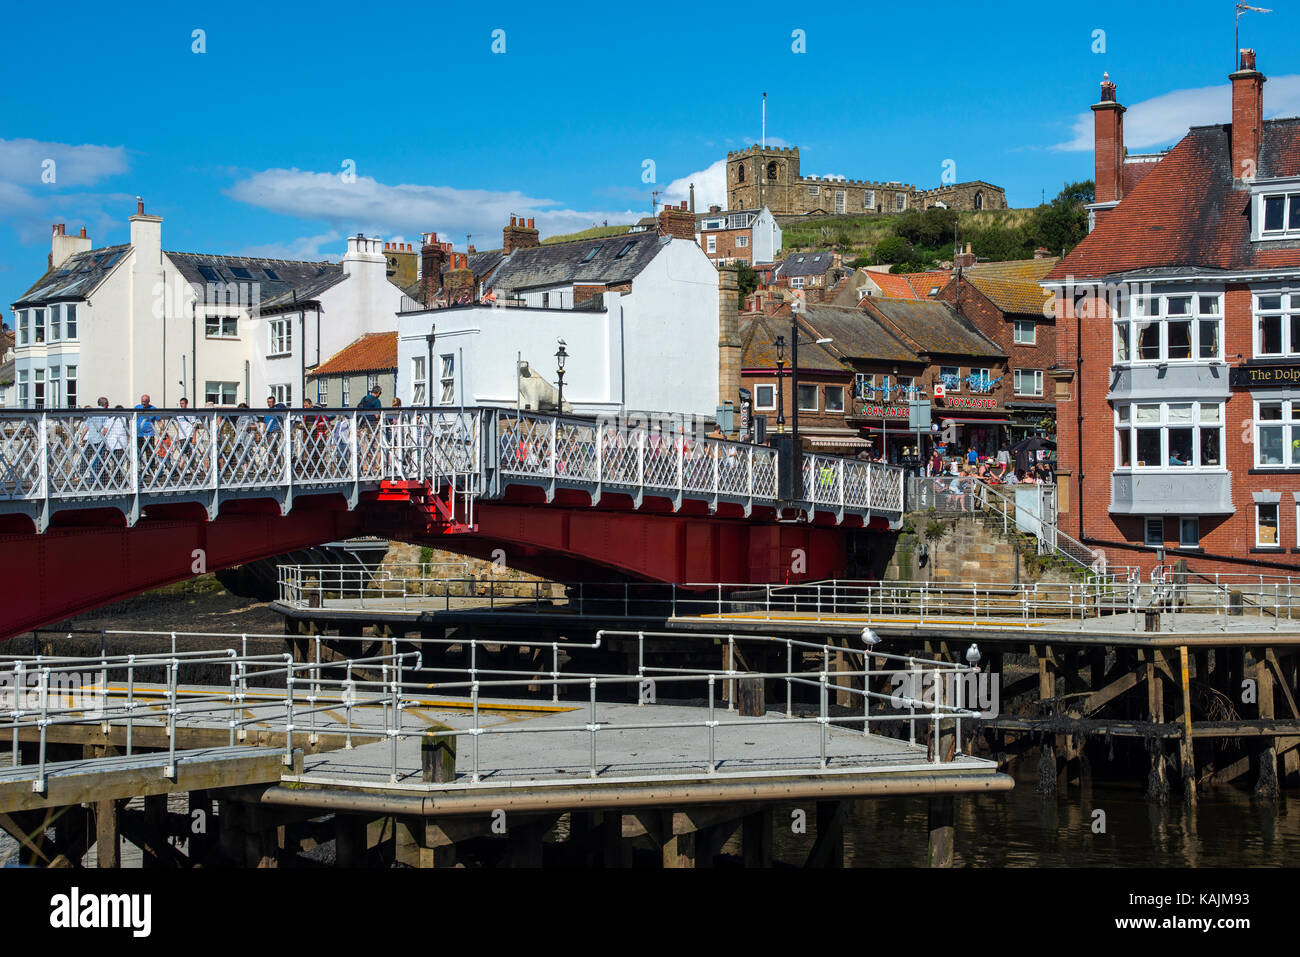 Swing Bridge and River Esk, Whitby, North Yorkshire - Stock Image